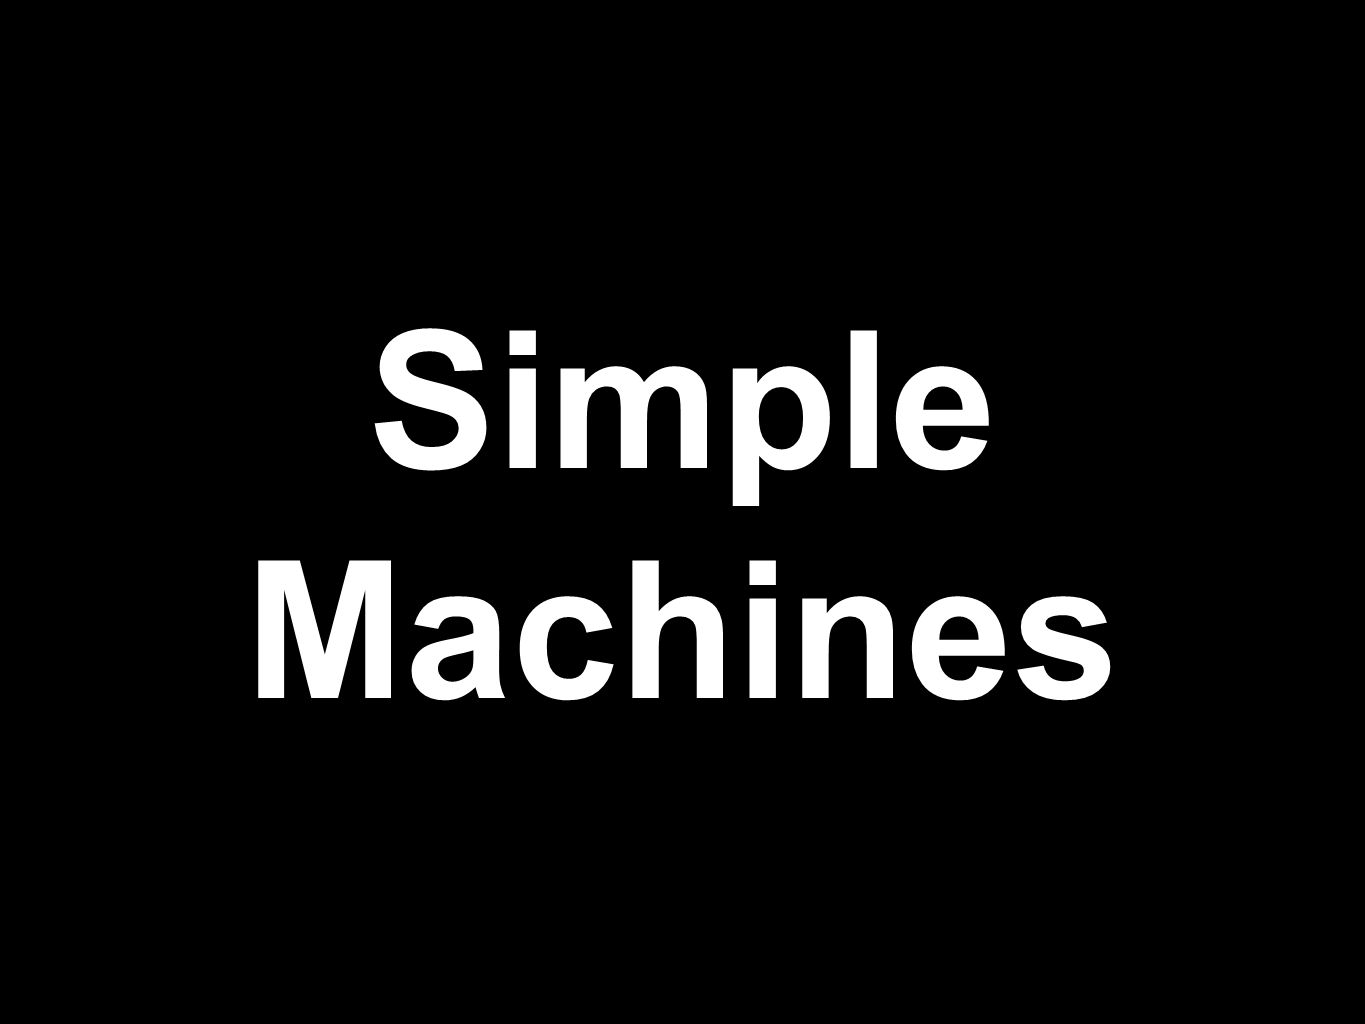 What are the 6 simple machines? Inclined plane Wedge Screw Lever Wheel & Axle Pulley